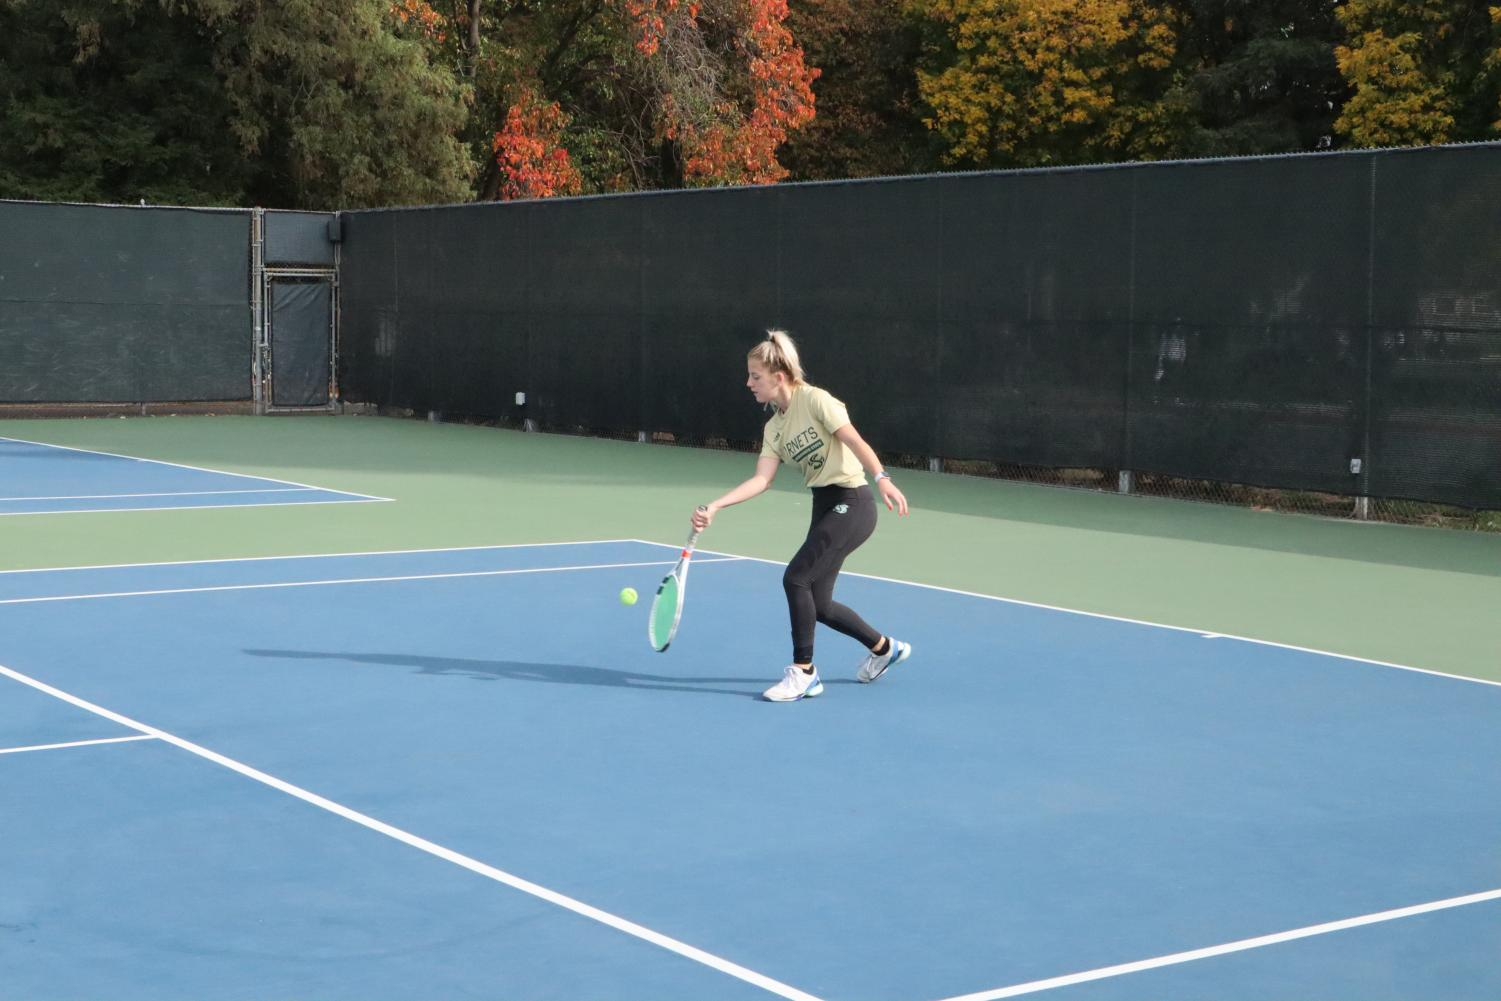 Sac State junior tennis player Jenna Dorian returns a serve during practice. The women's tennis team will be getting a new locker room in Yosemite Hall 169 for the team's 11 players.